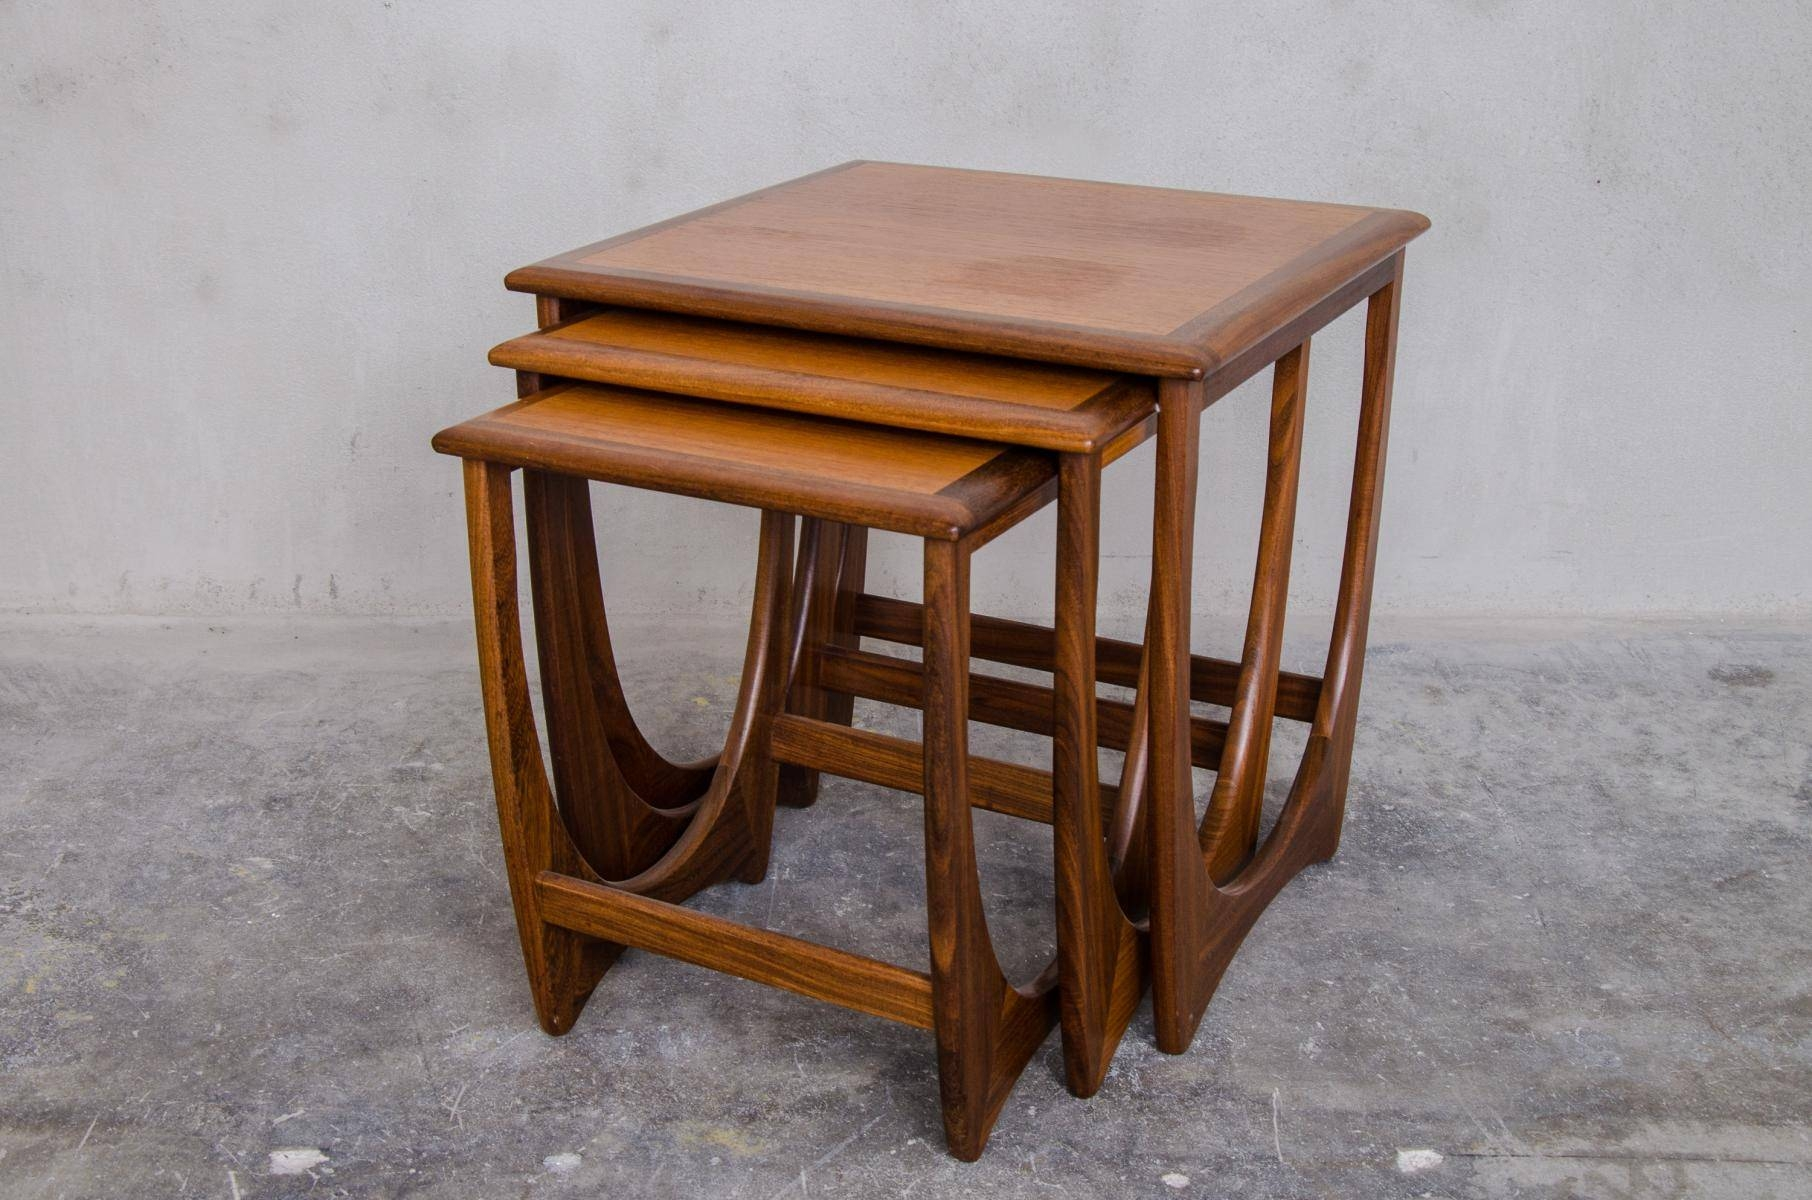 Vintage Nesting Tables And Stacking Tables Online Shop | Buy With Stackable Coffee Tables (View 30 of 30)